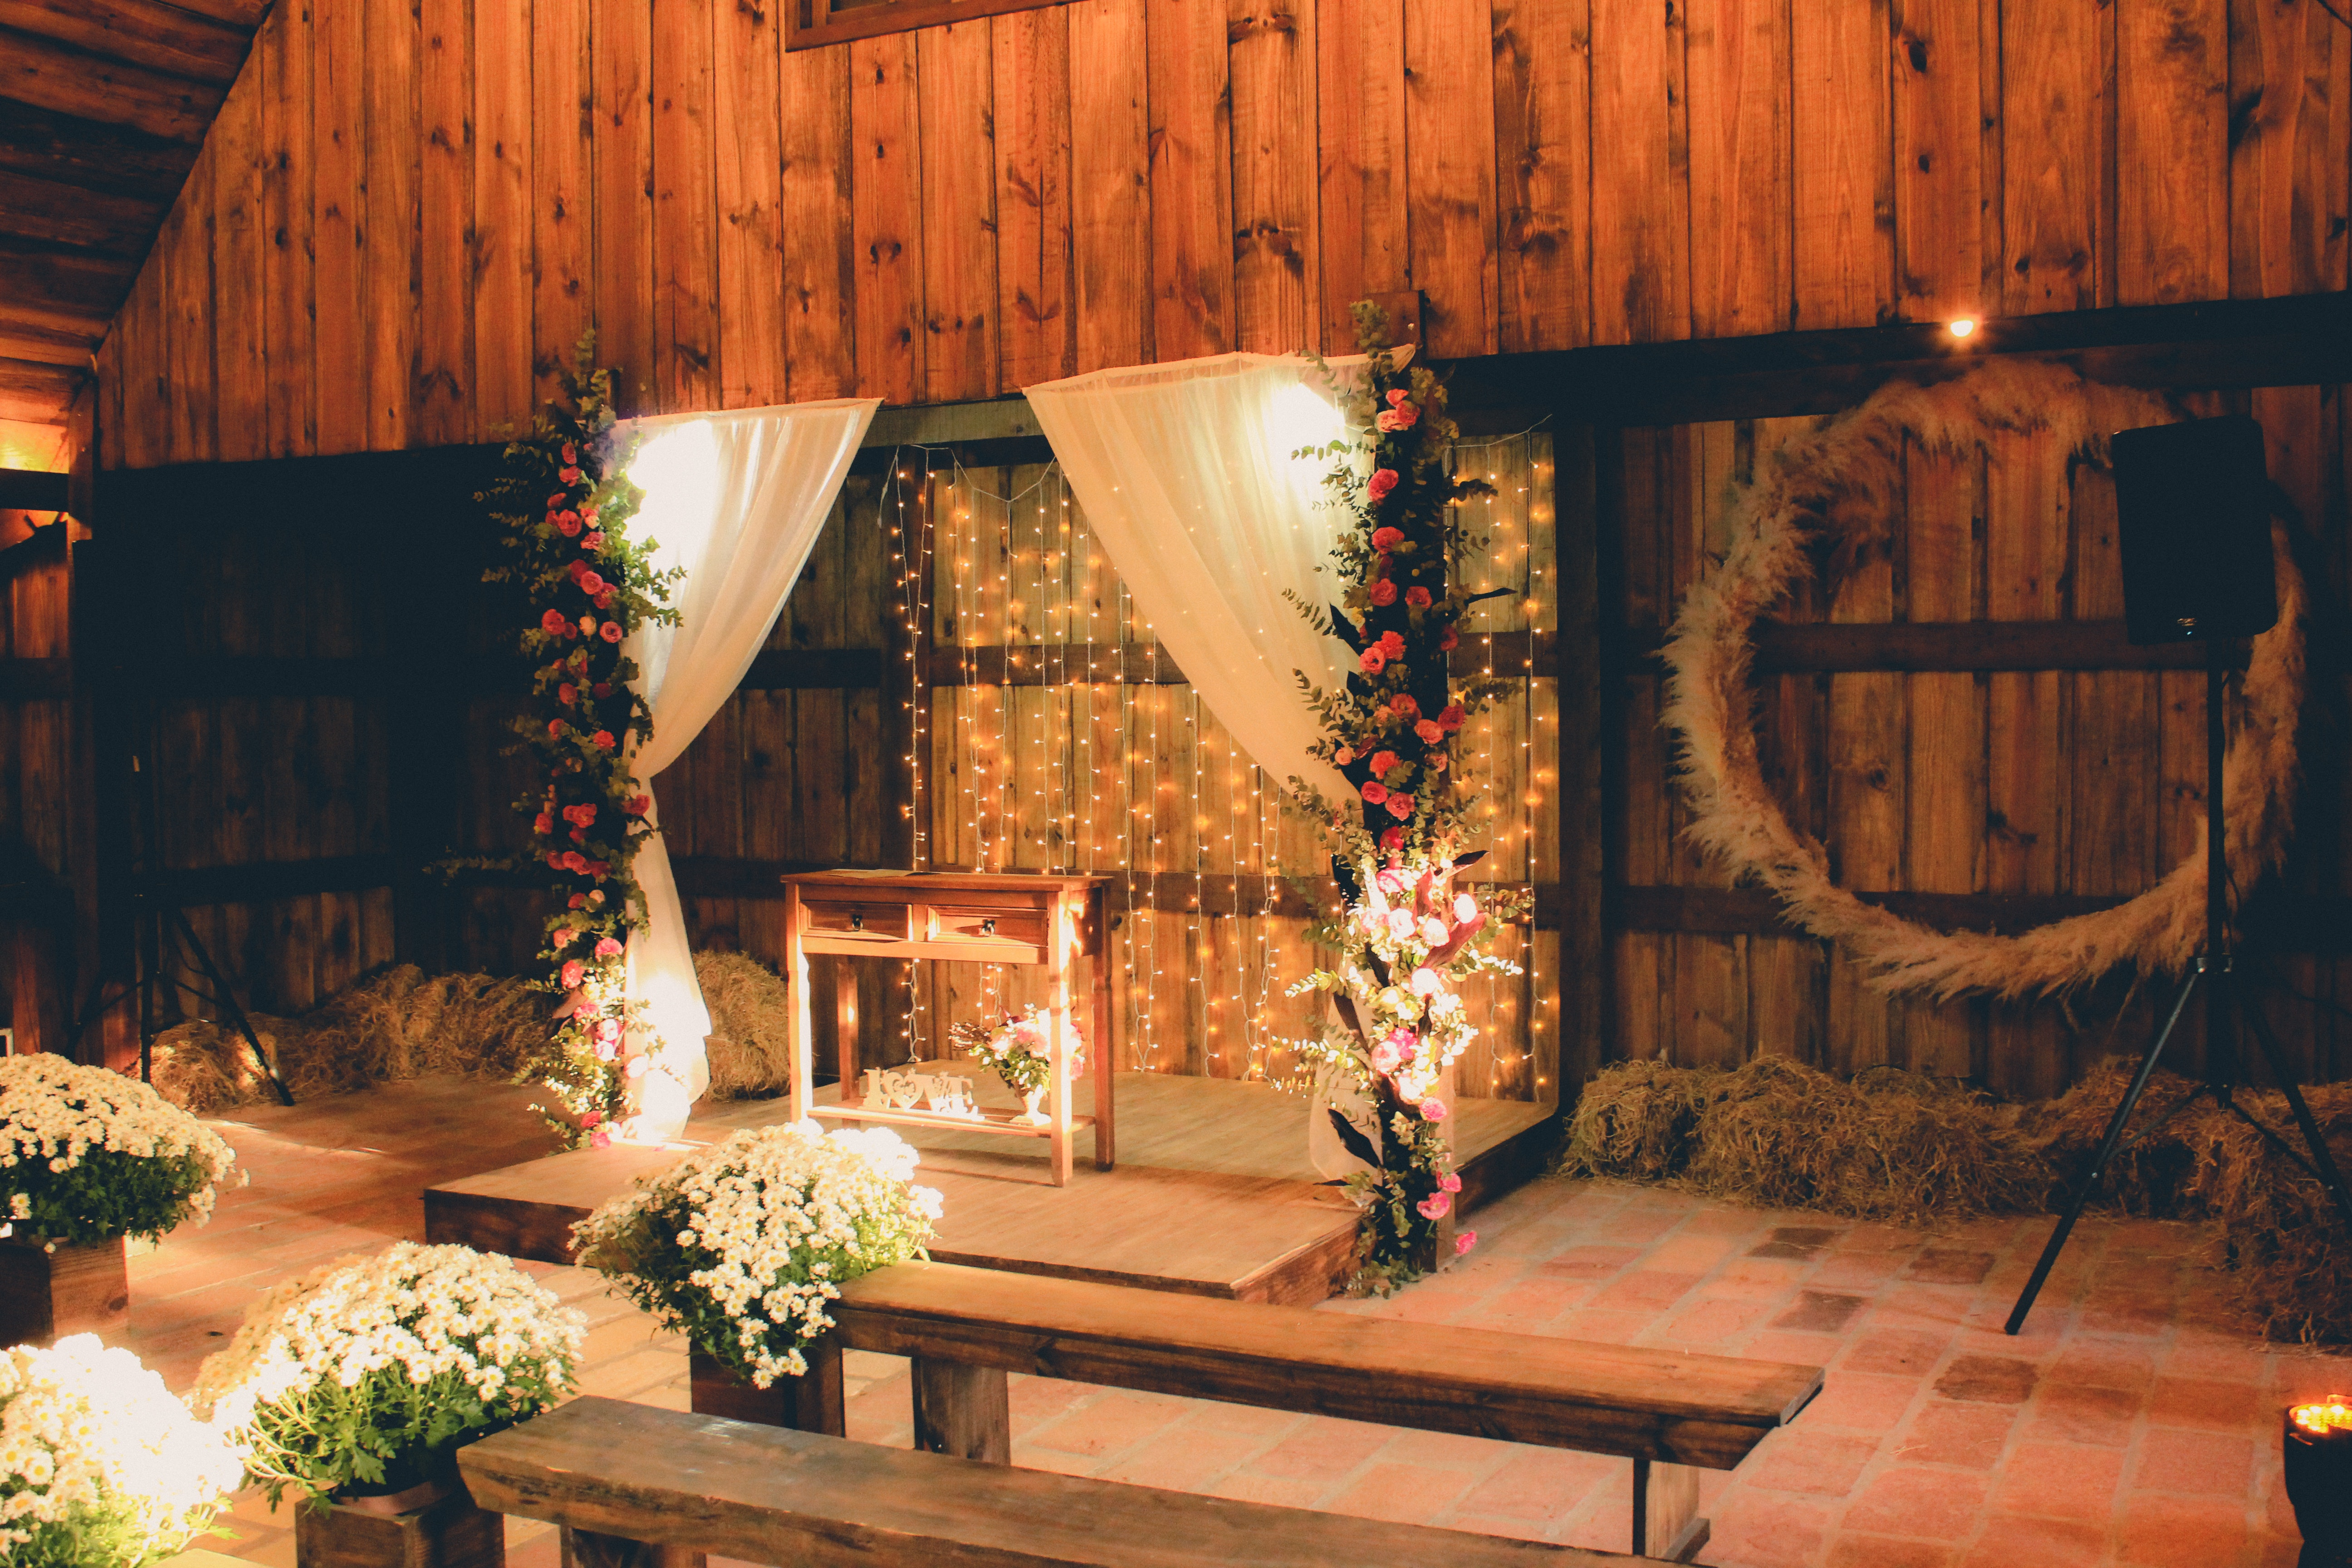 These 10 Wedding Altar Decorations Created A Beautiful Space At The End Of The Aisle Mywedding